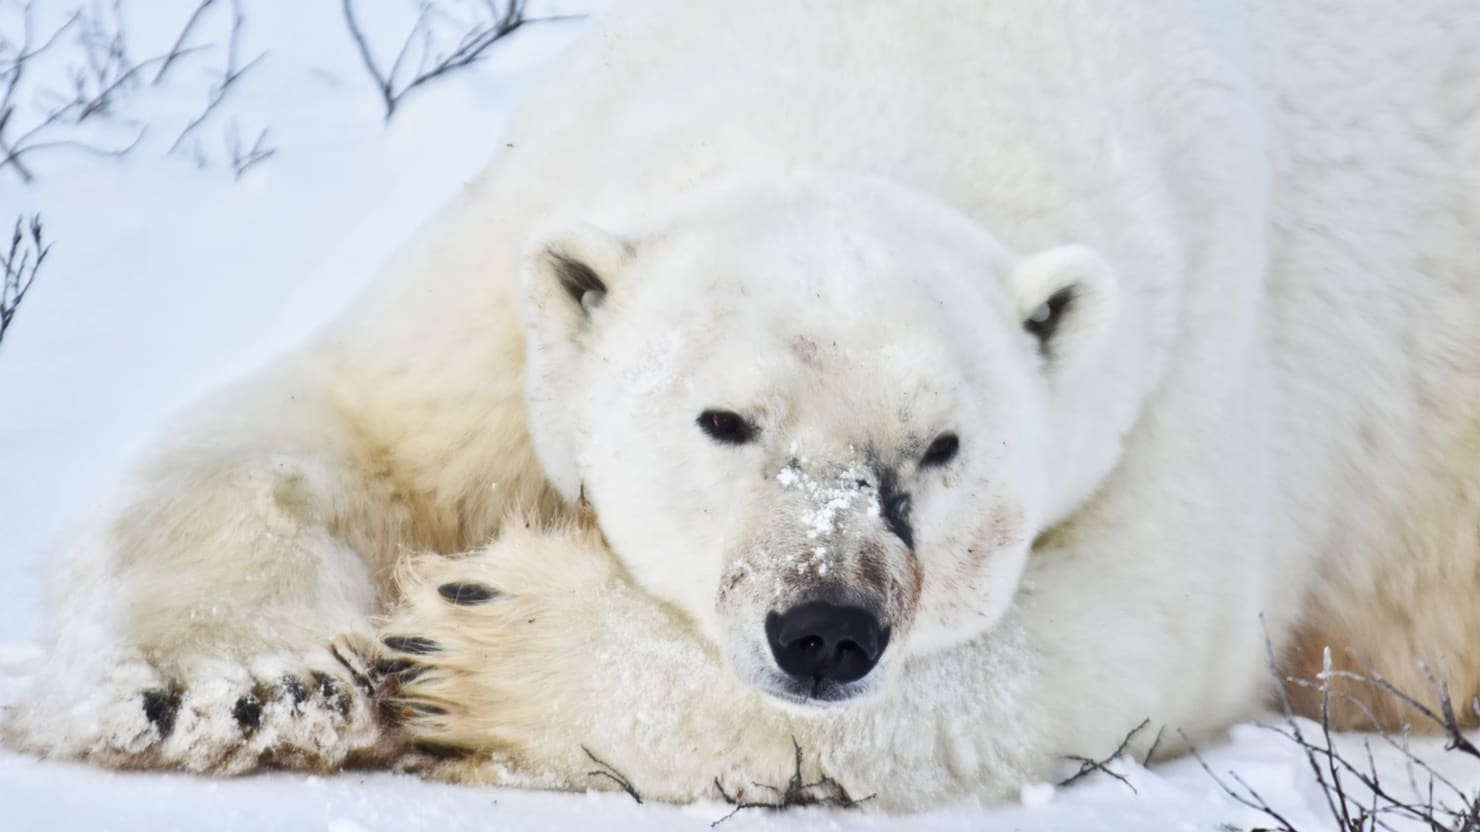 Climate Change Will Make Polar Bear Tourism More Unpredictable